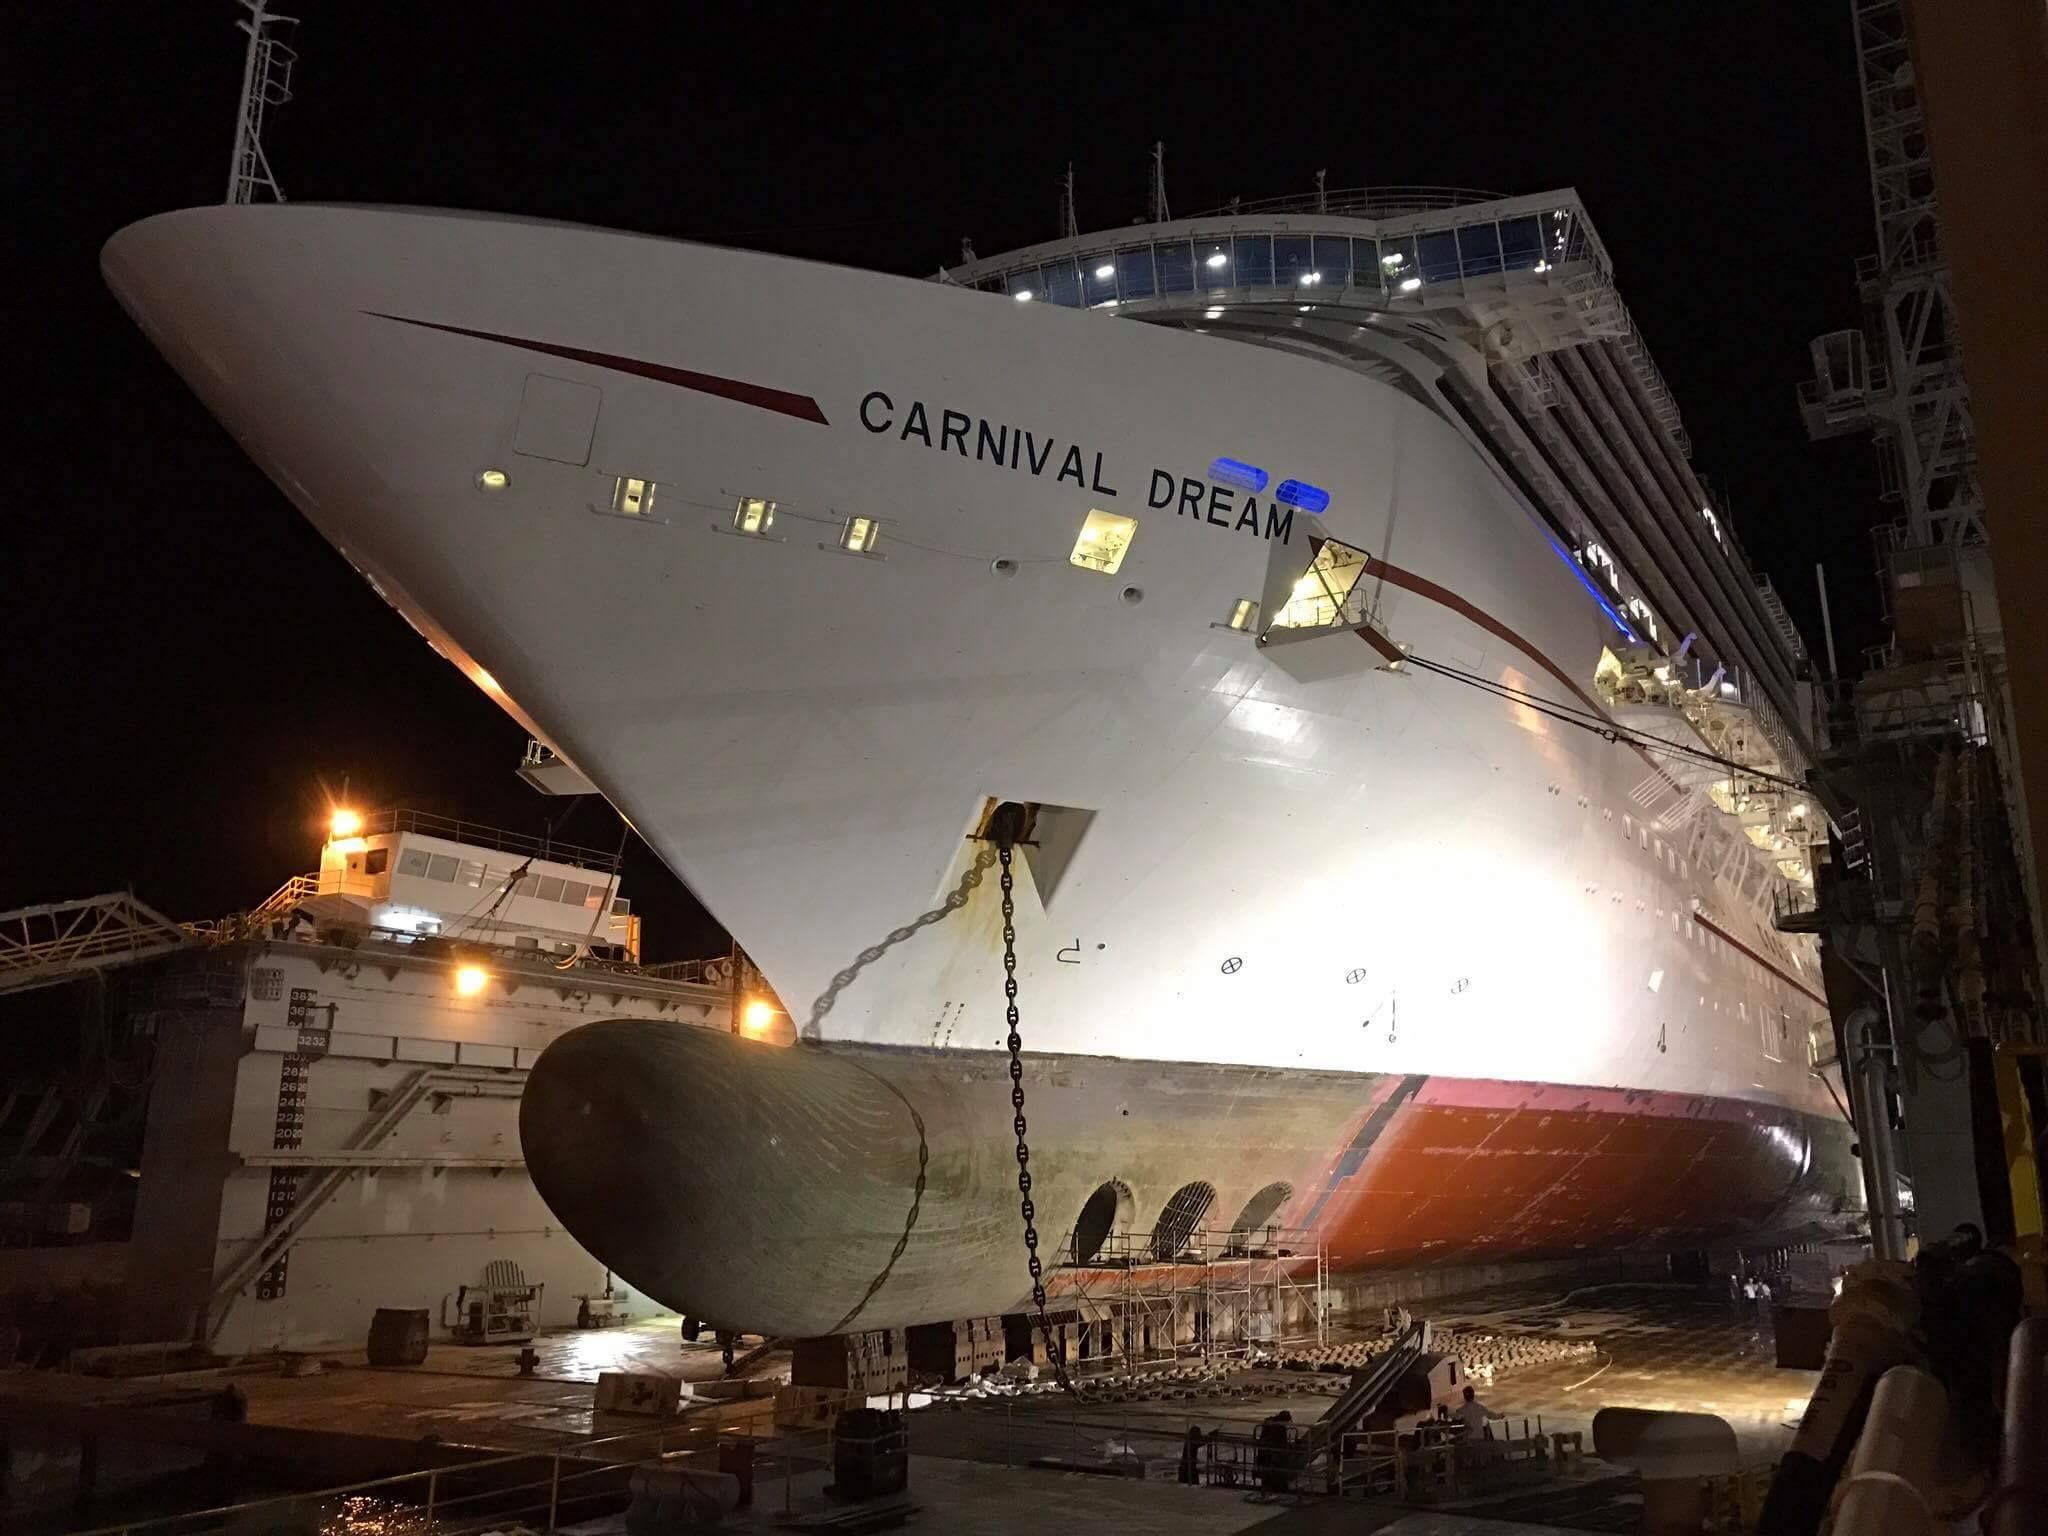 Latest Photos of Carnival Dream During 2 Week Dry Dock